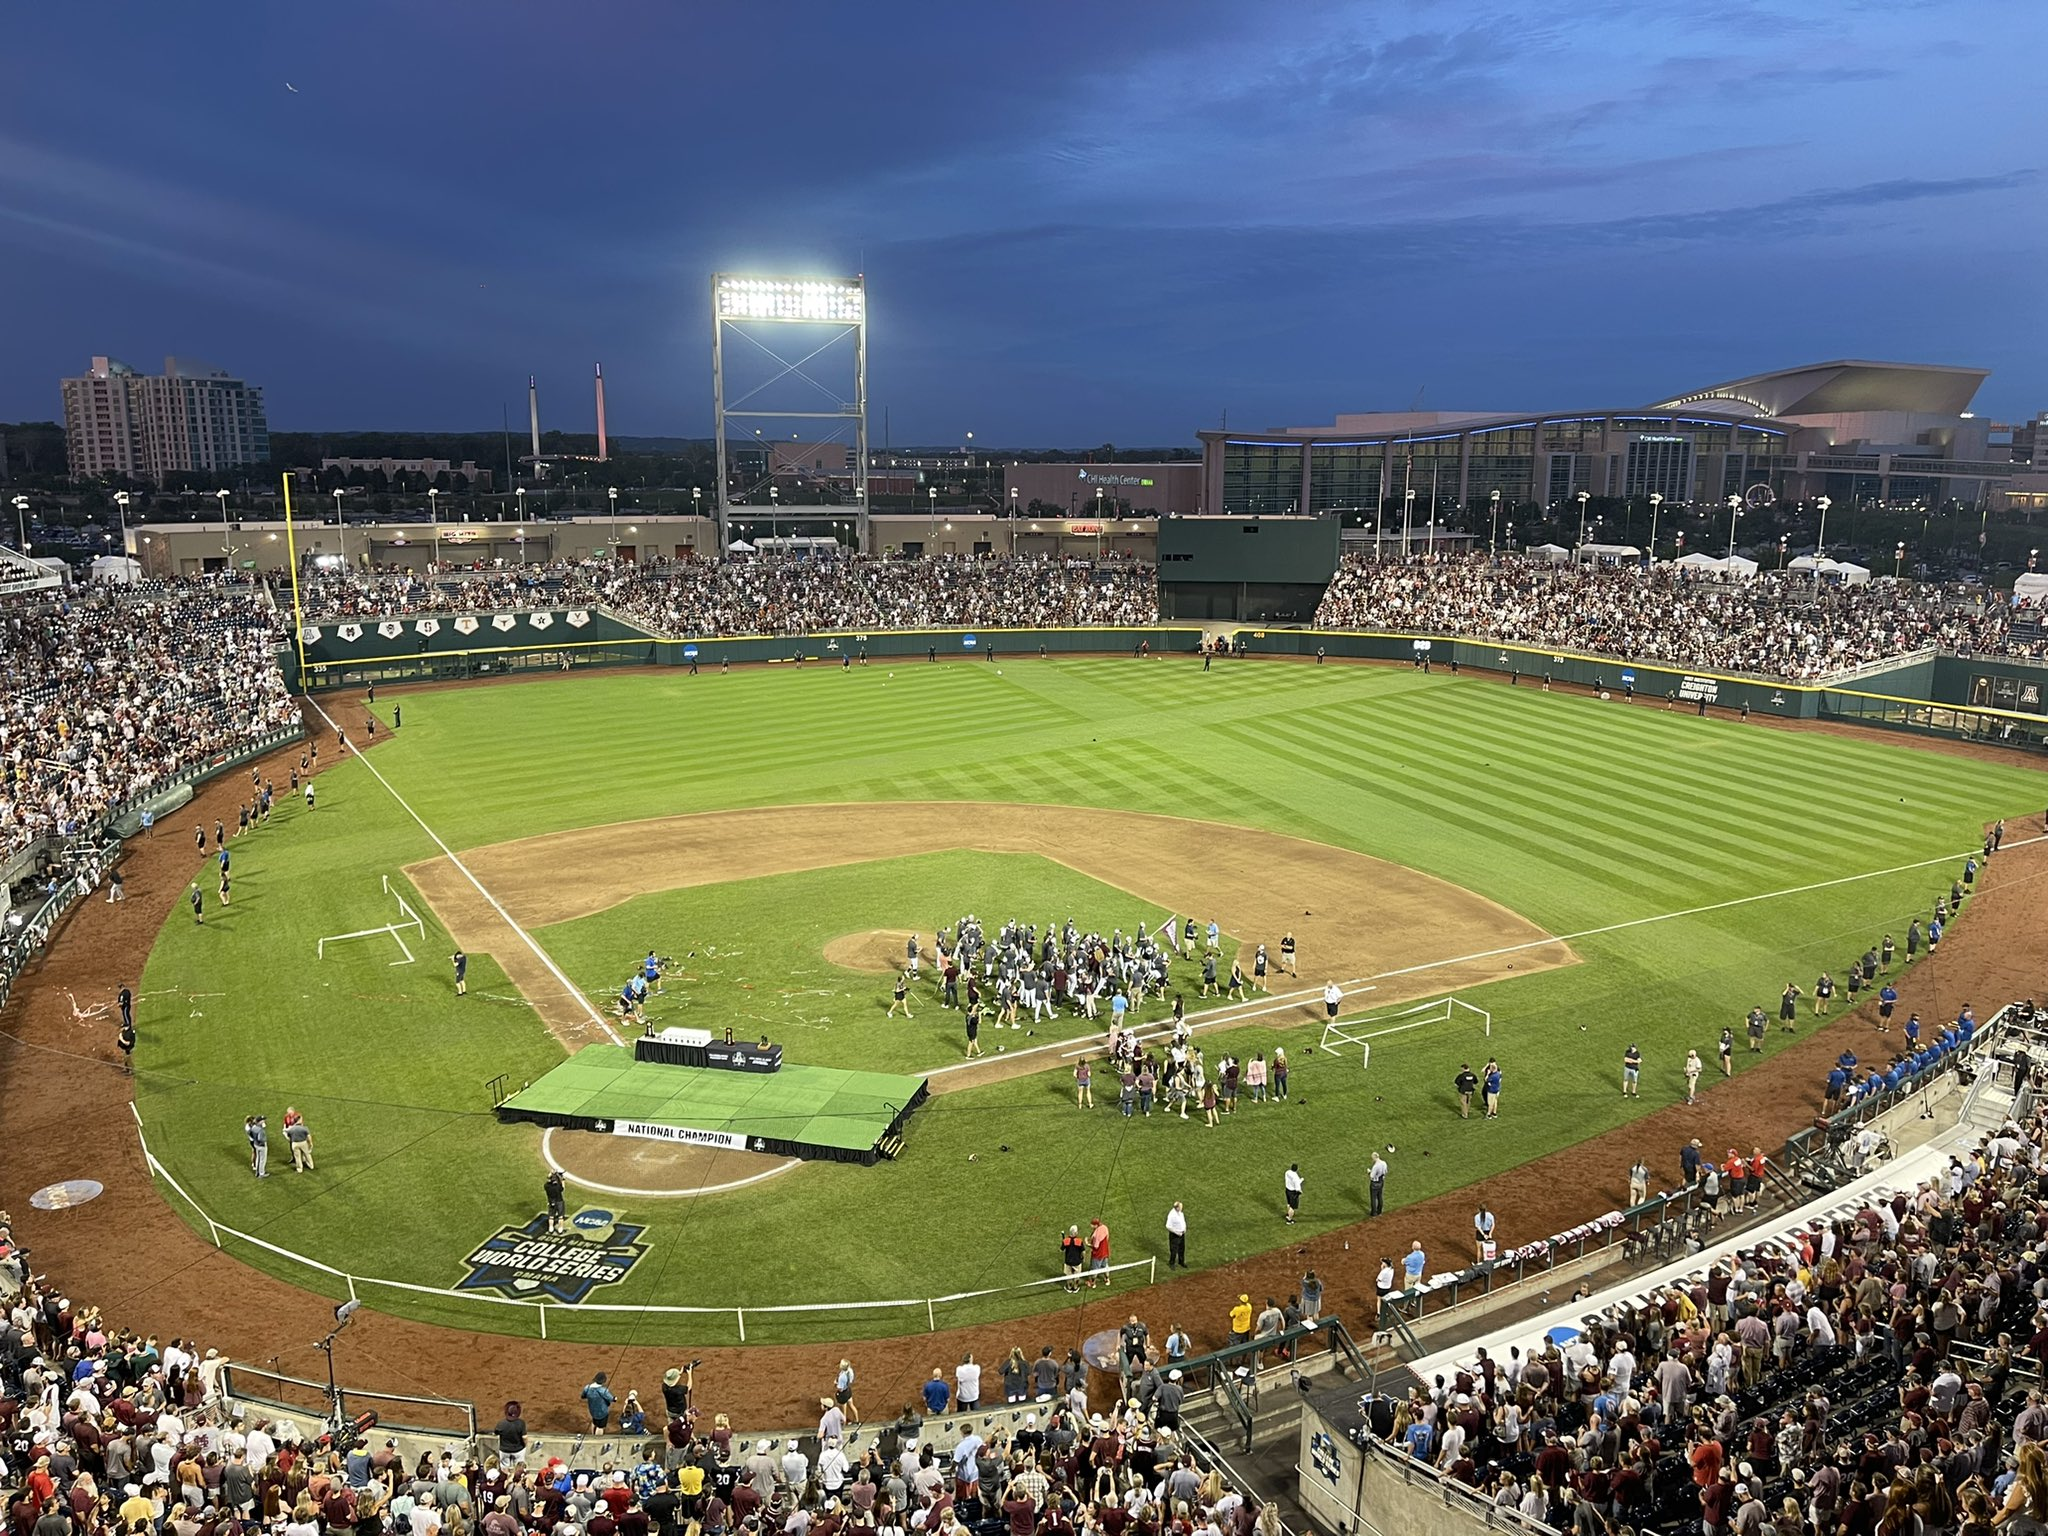 It was a season like no other. At one point, I wasn't sure we'd have a season. Then, I started it seeing @HailStateBB at Globe Life. It ends in the same fashion.  I think I can speak for the rest of the @d1baseball crew w/ a simple 'Thank You' to the college baseball community. https://t.co/n8QbCrXaCP